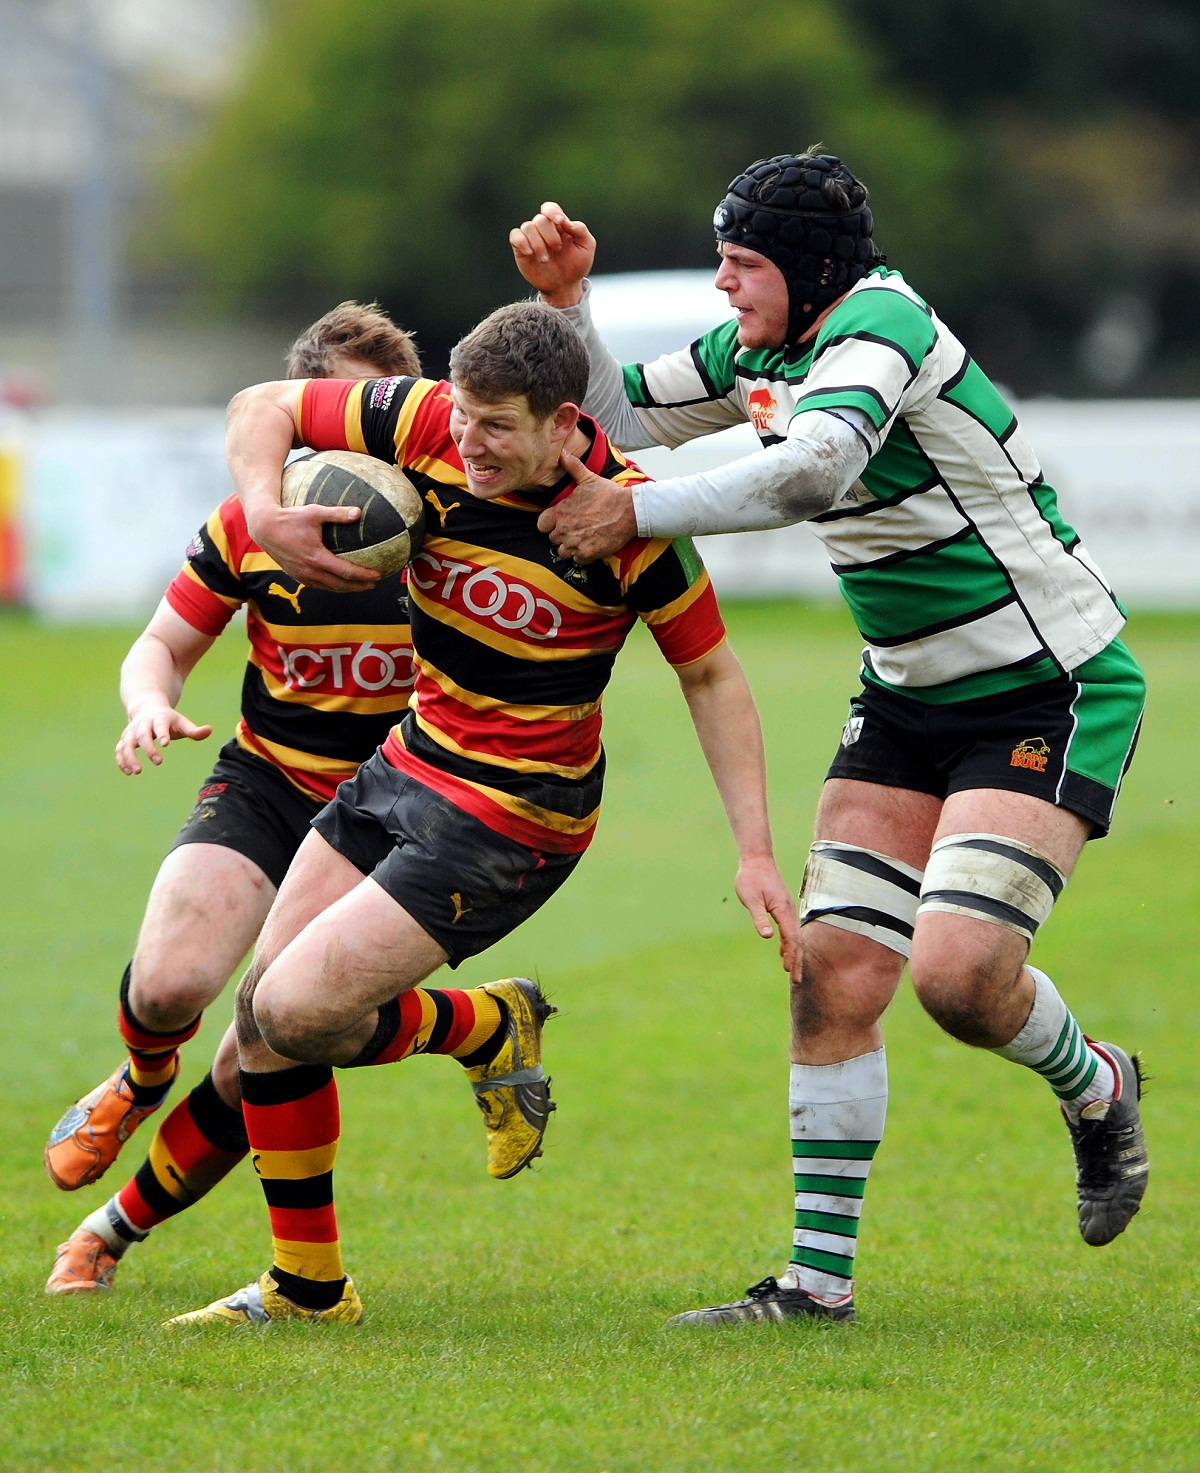 Richard Scull is preferred at scrum half over Kirk Arundale for the home match against Sandal